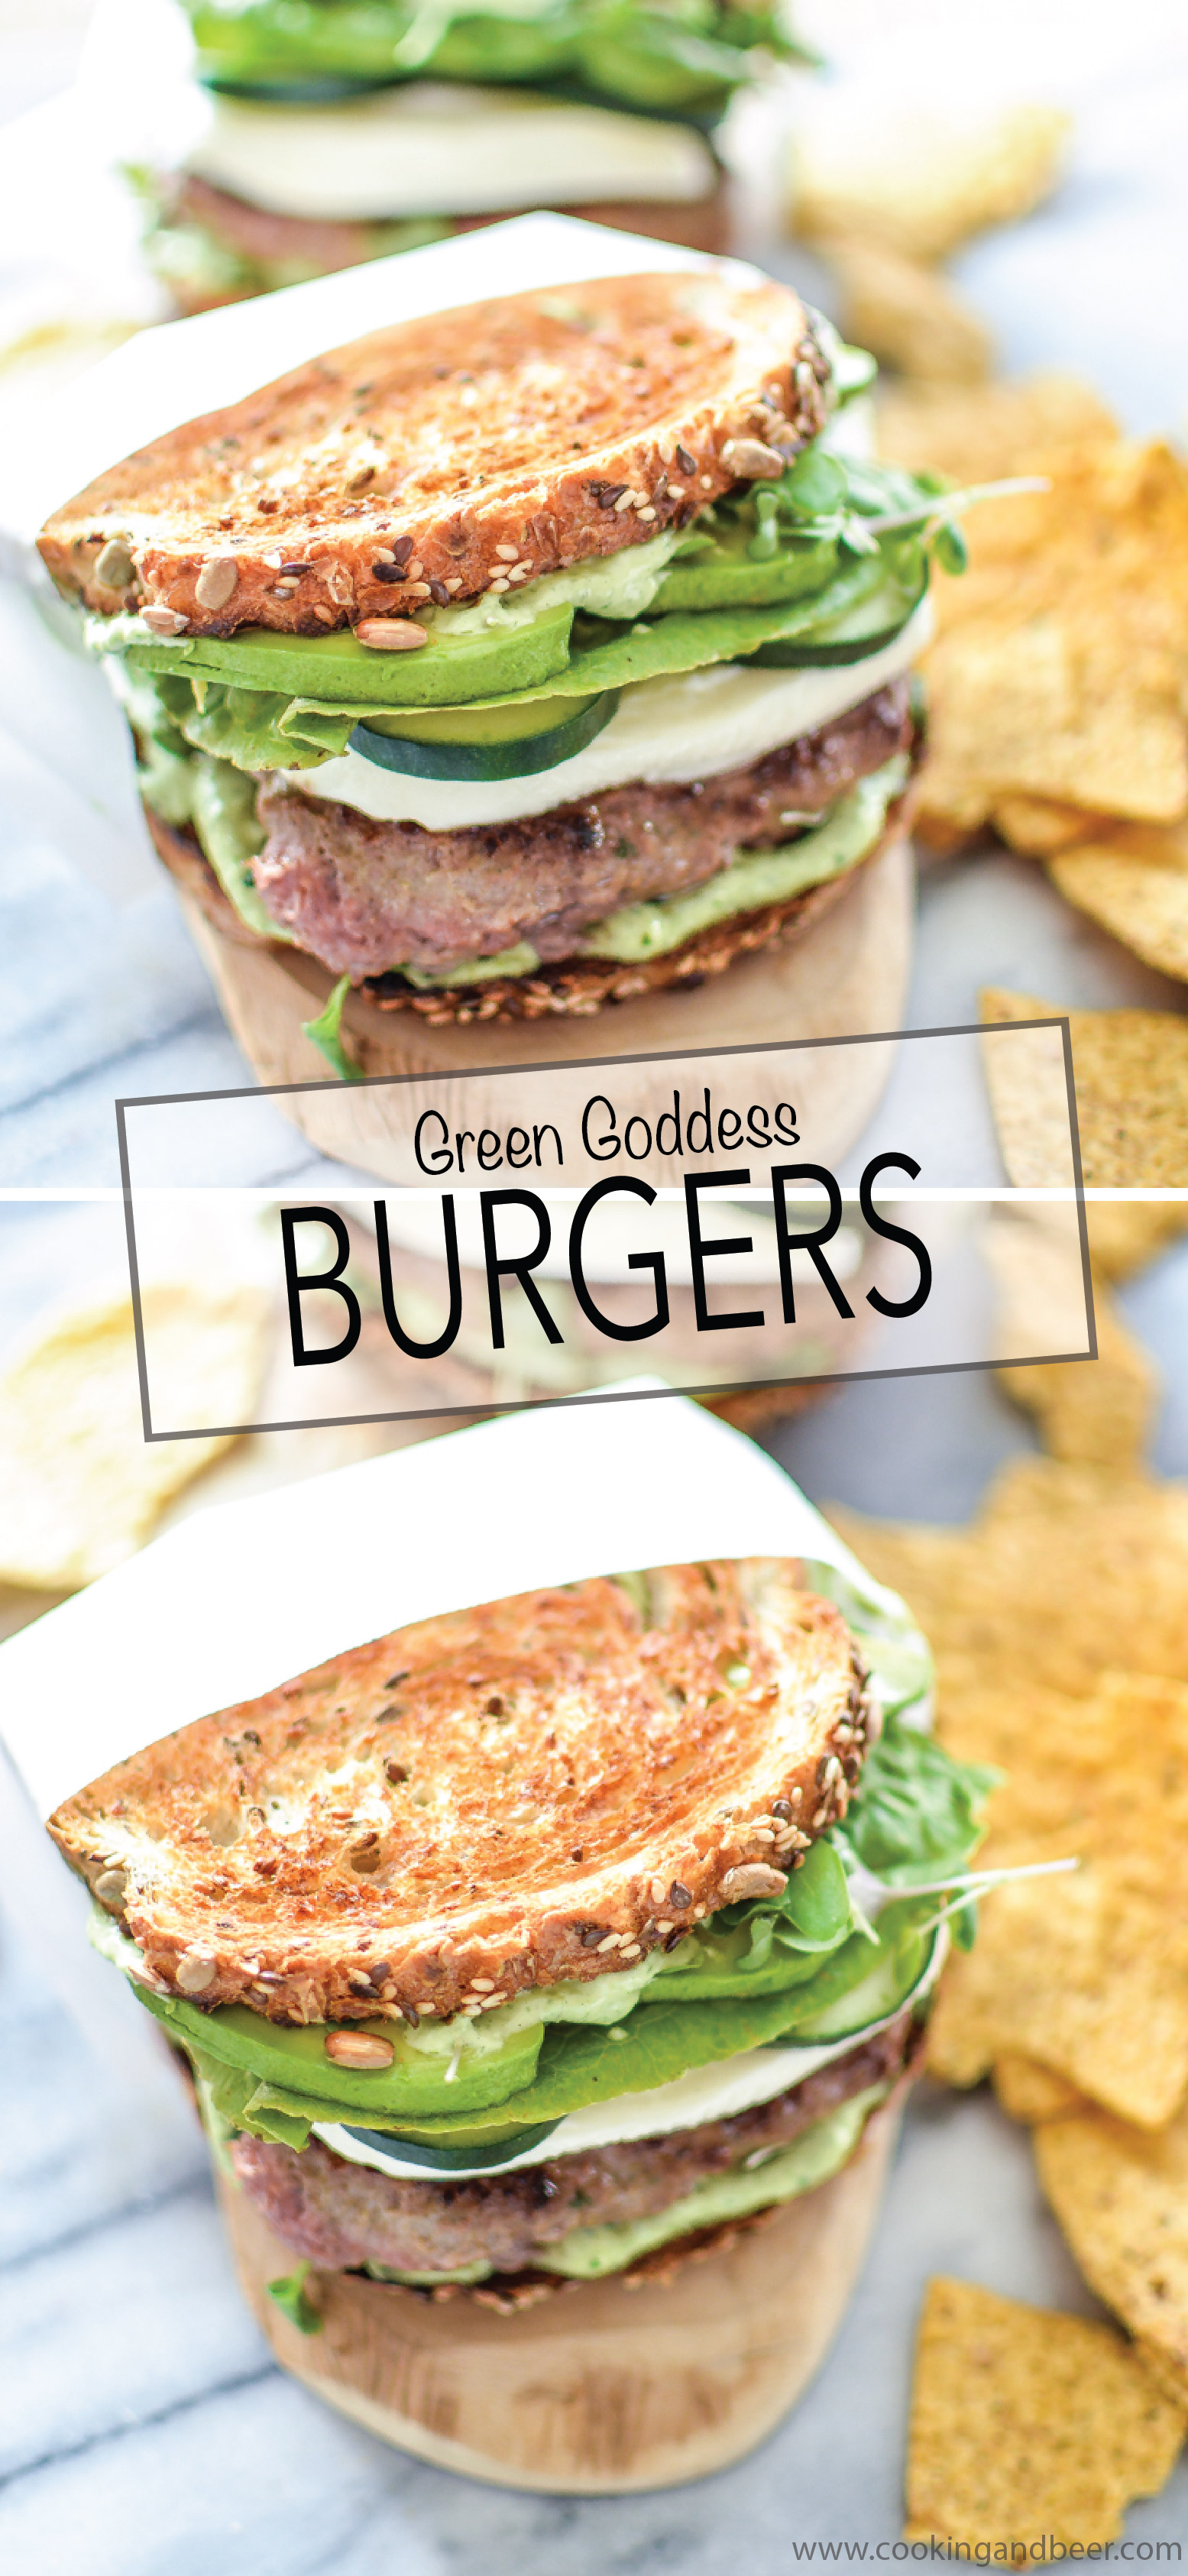 Green Goddess Burgers are a healthier way to spruce up your burger recipe! | www.cookingandbeer.com